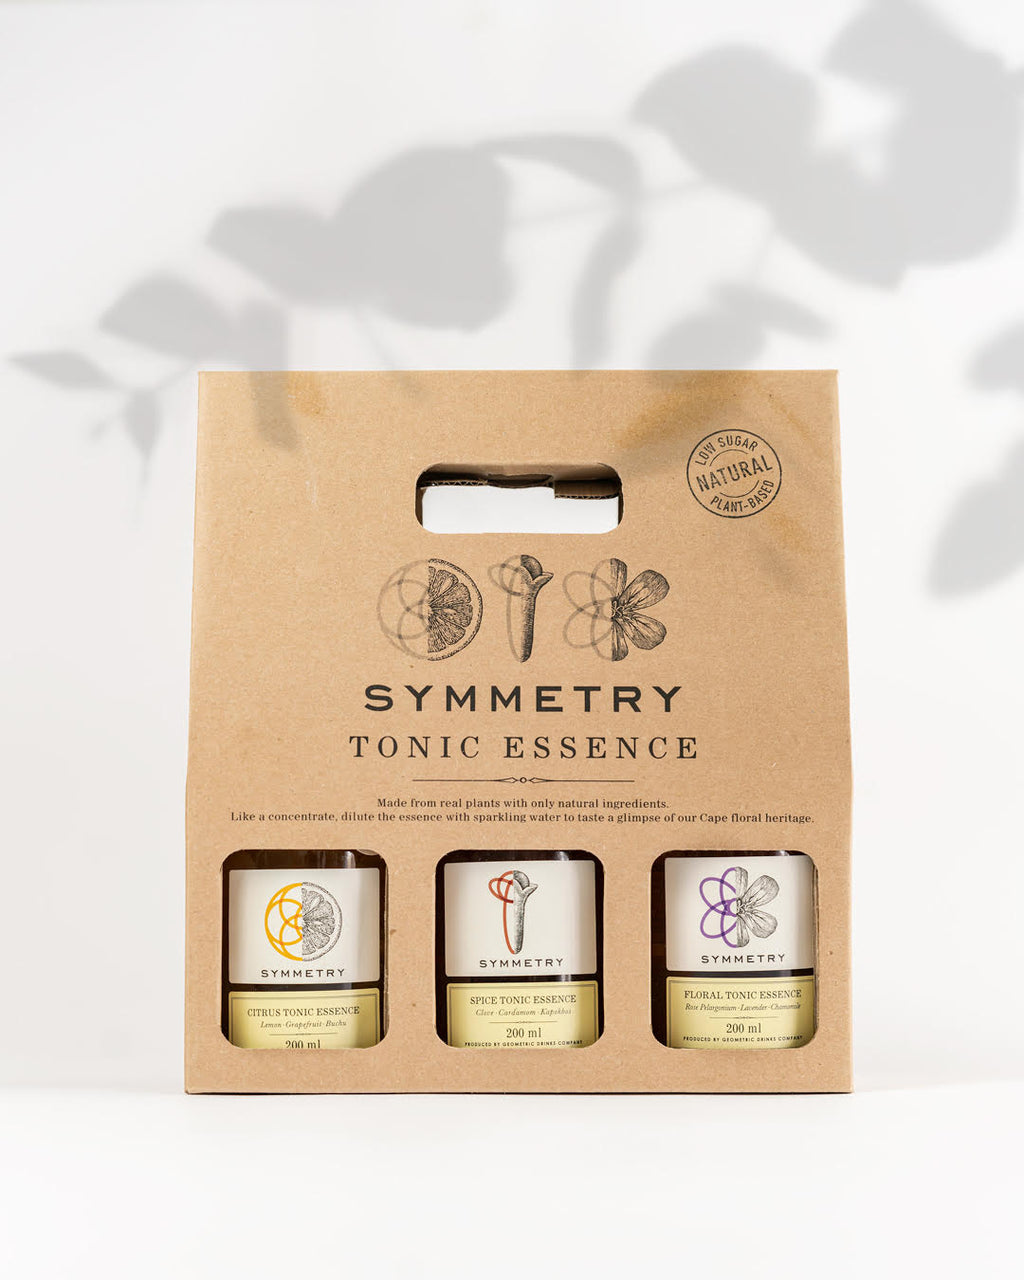 Symmetry botanical giftpack 3 x 200ml